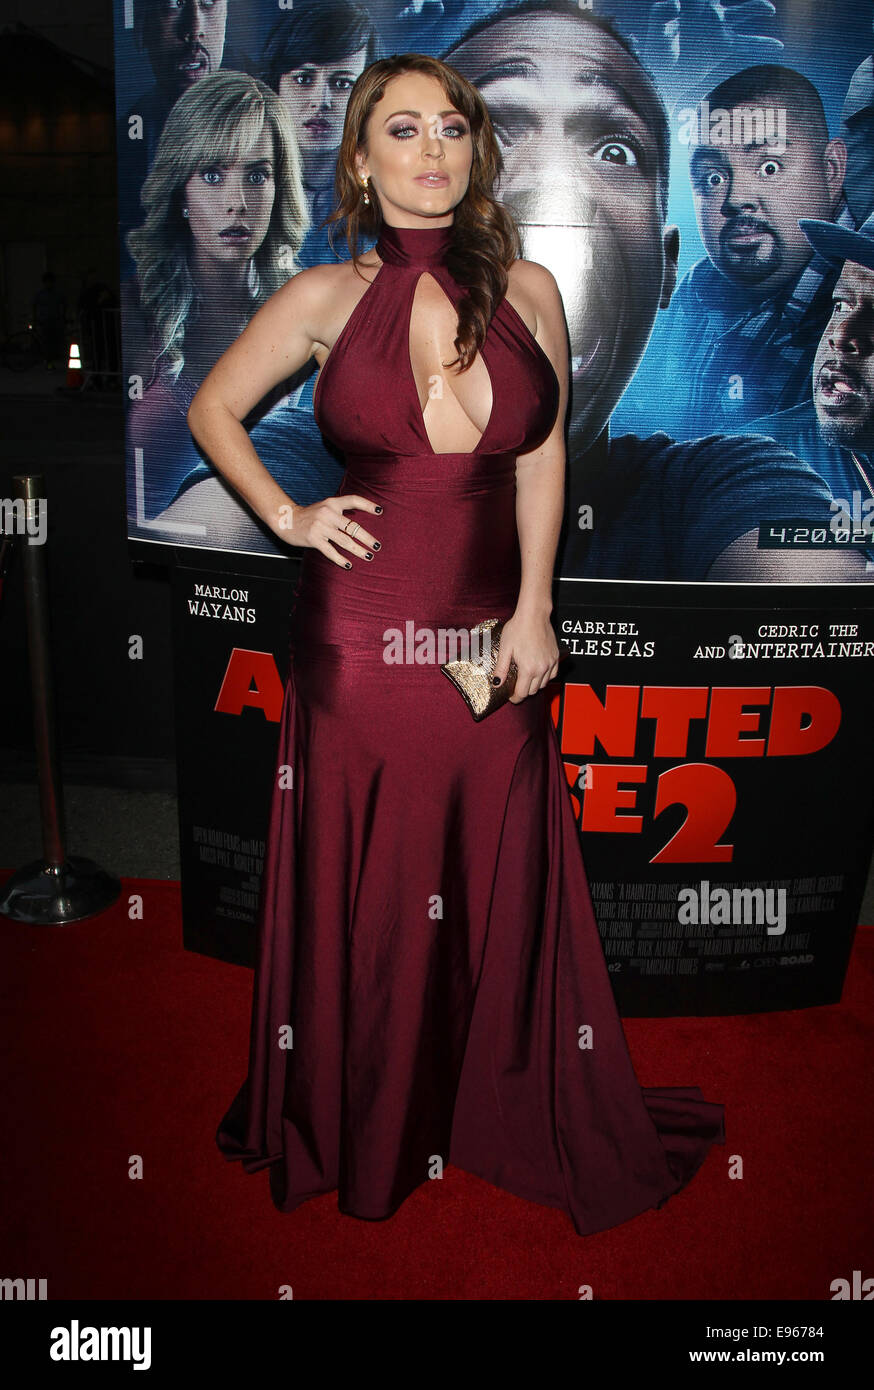 premiere of open road films a haunted house 2 featuring kirsty rh alamy com a haunted house 2 afdah a haunted house 2013